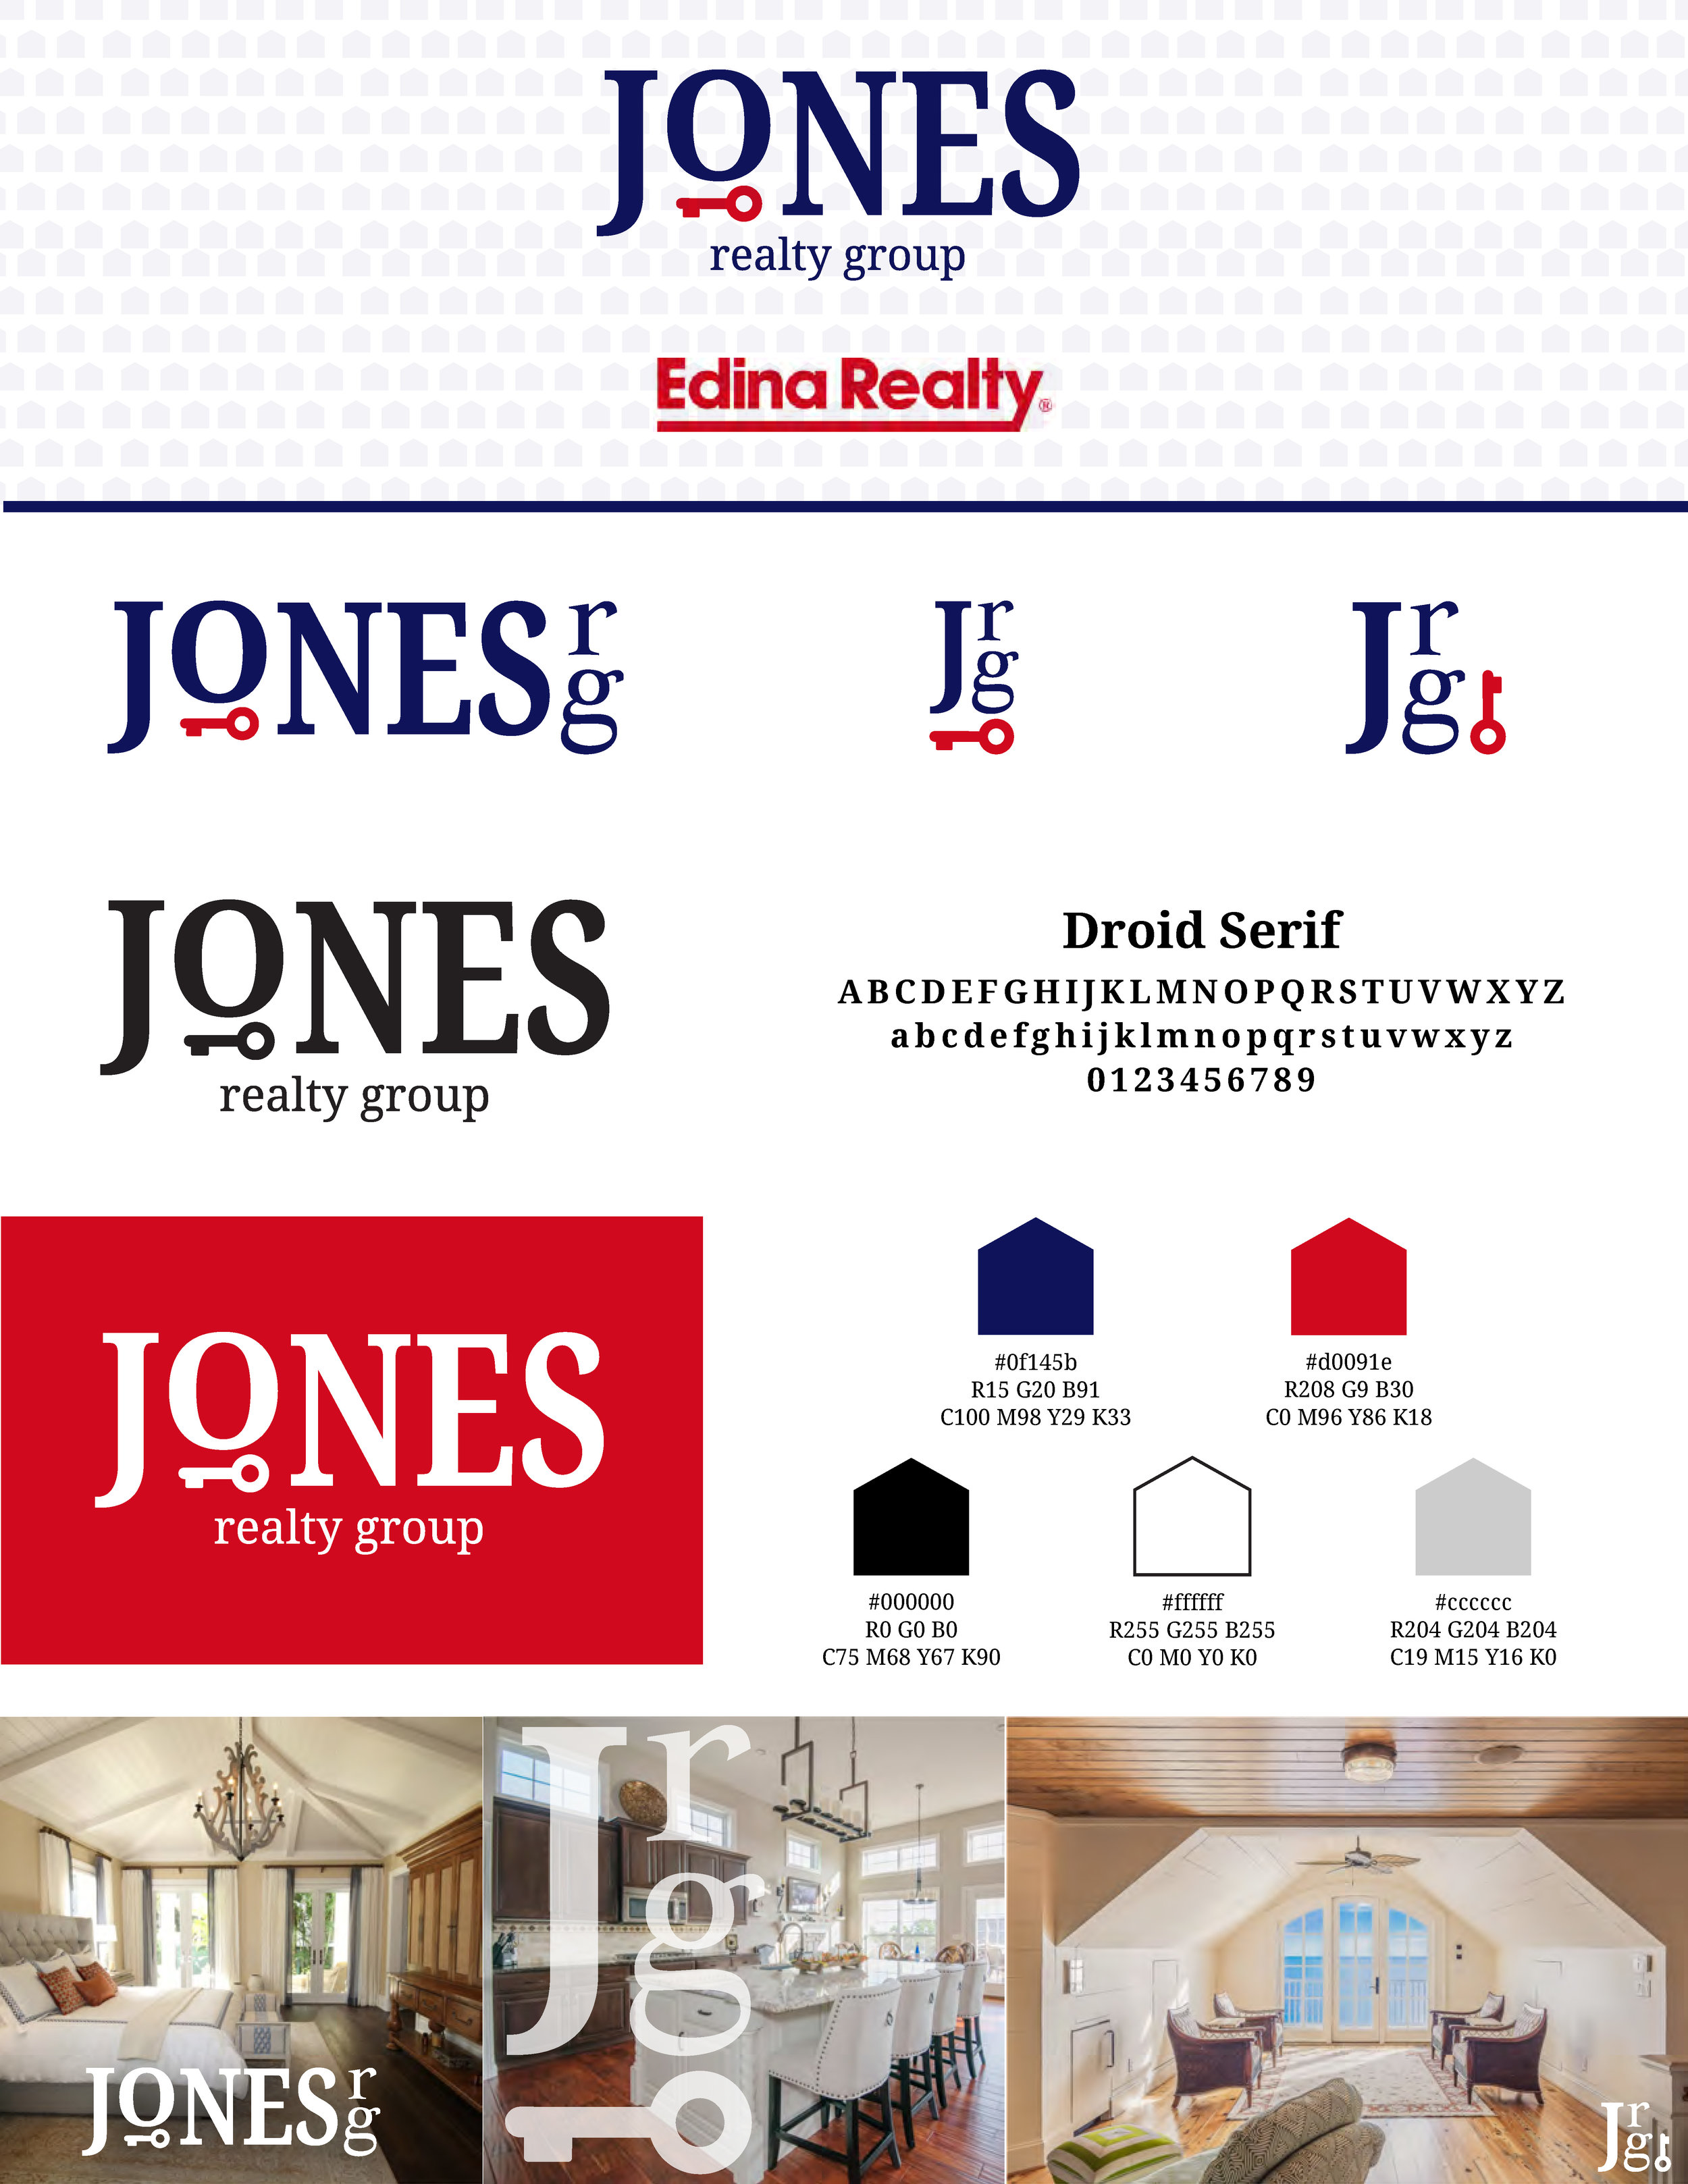 One page style guide summary including logo use suggestions. (*Edina Realty logo is not a Pixel Loon design - it is only included to show that our Jones Realty Group logo will work in tandem with it)